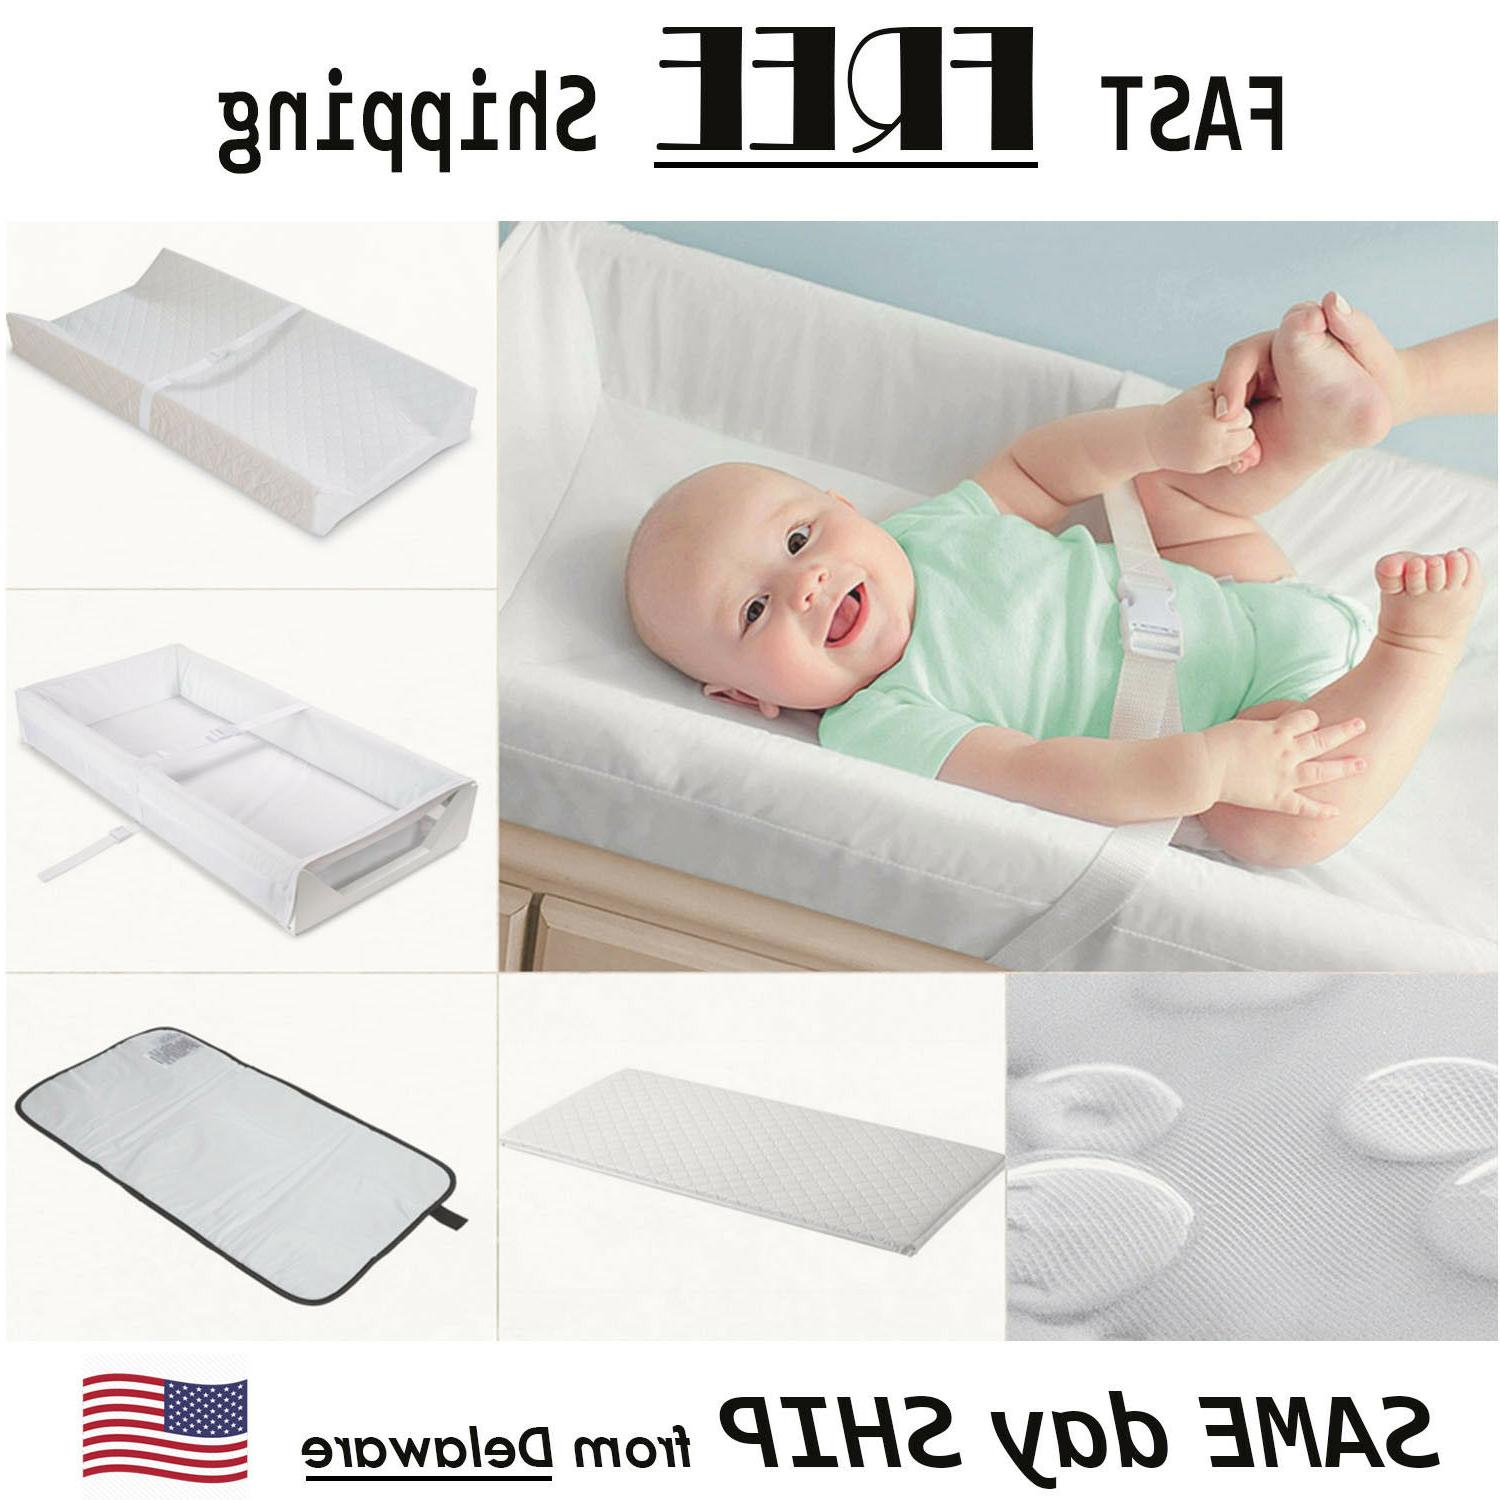 contoured changing pad baby diaper portable waterproof